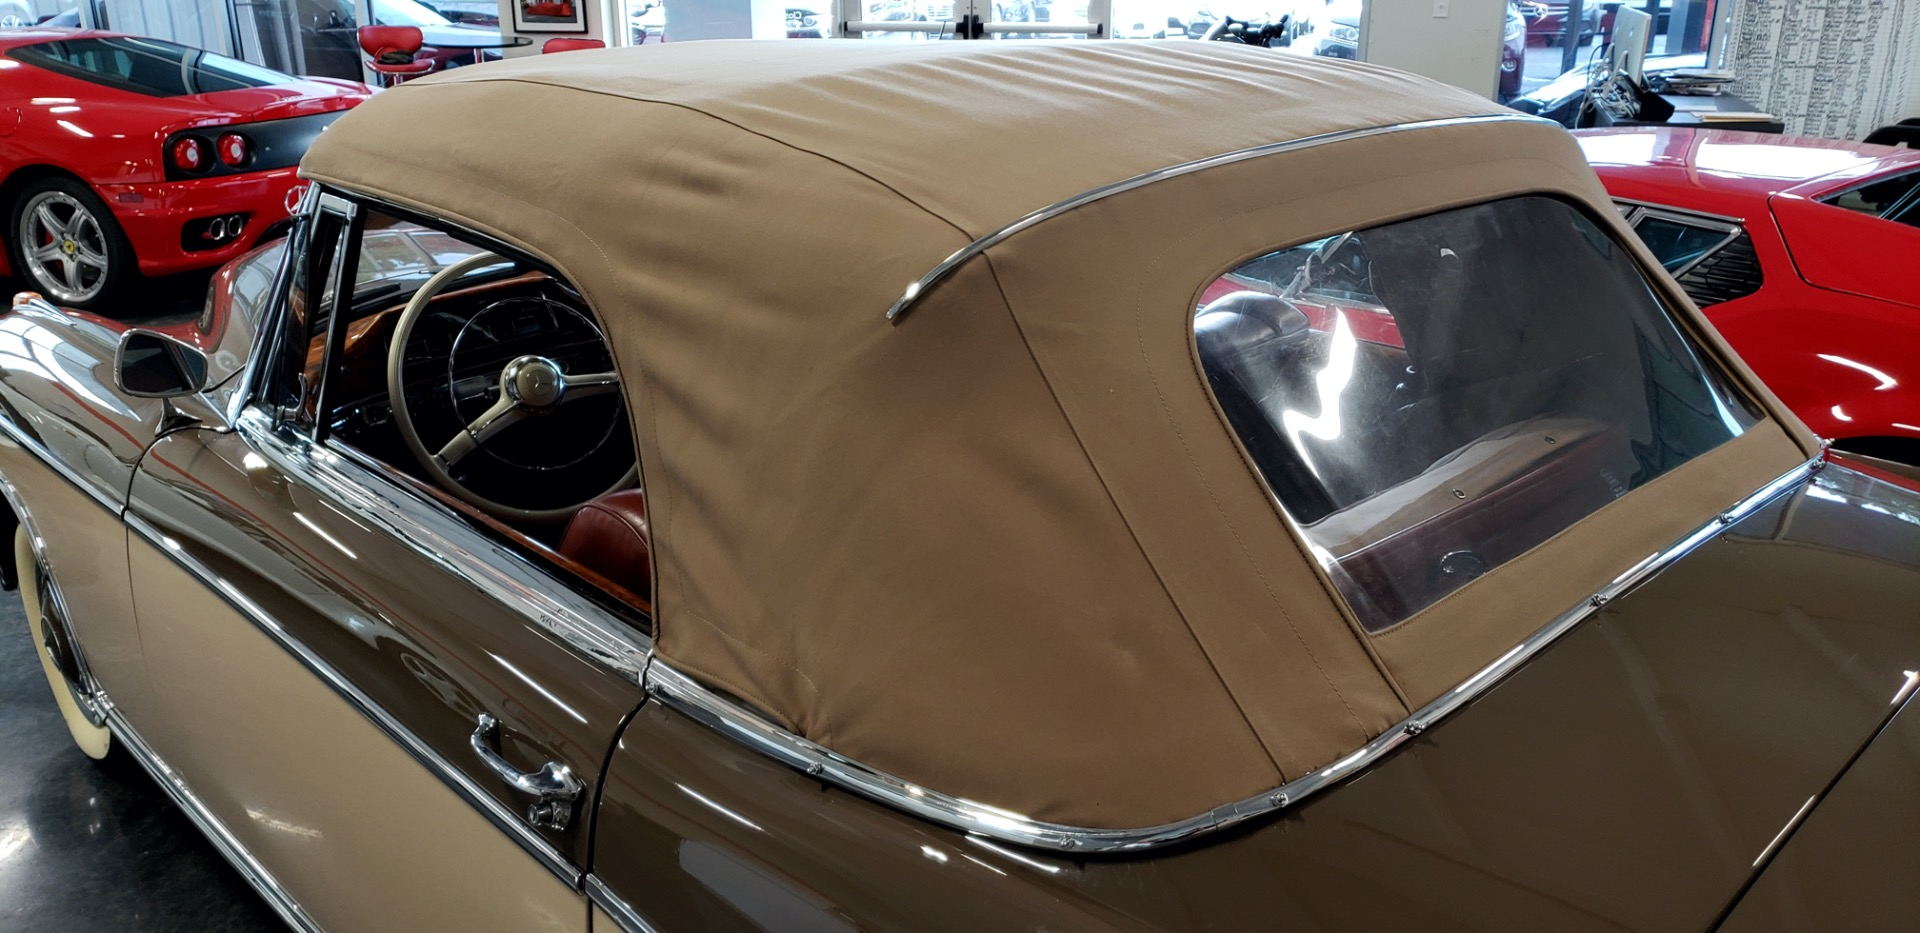 Used 1957 Mercedes-Benz 220 S Cabriolet - Full Restoration for sale Sold at Formula Imports in Charlotte NC 28227 17